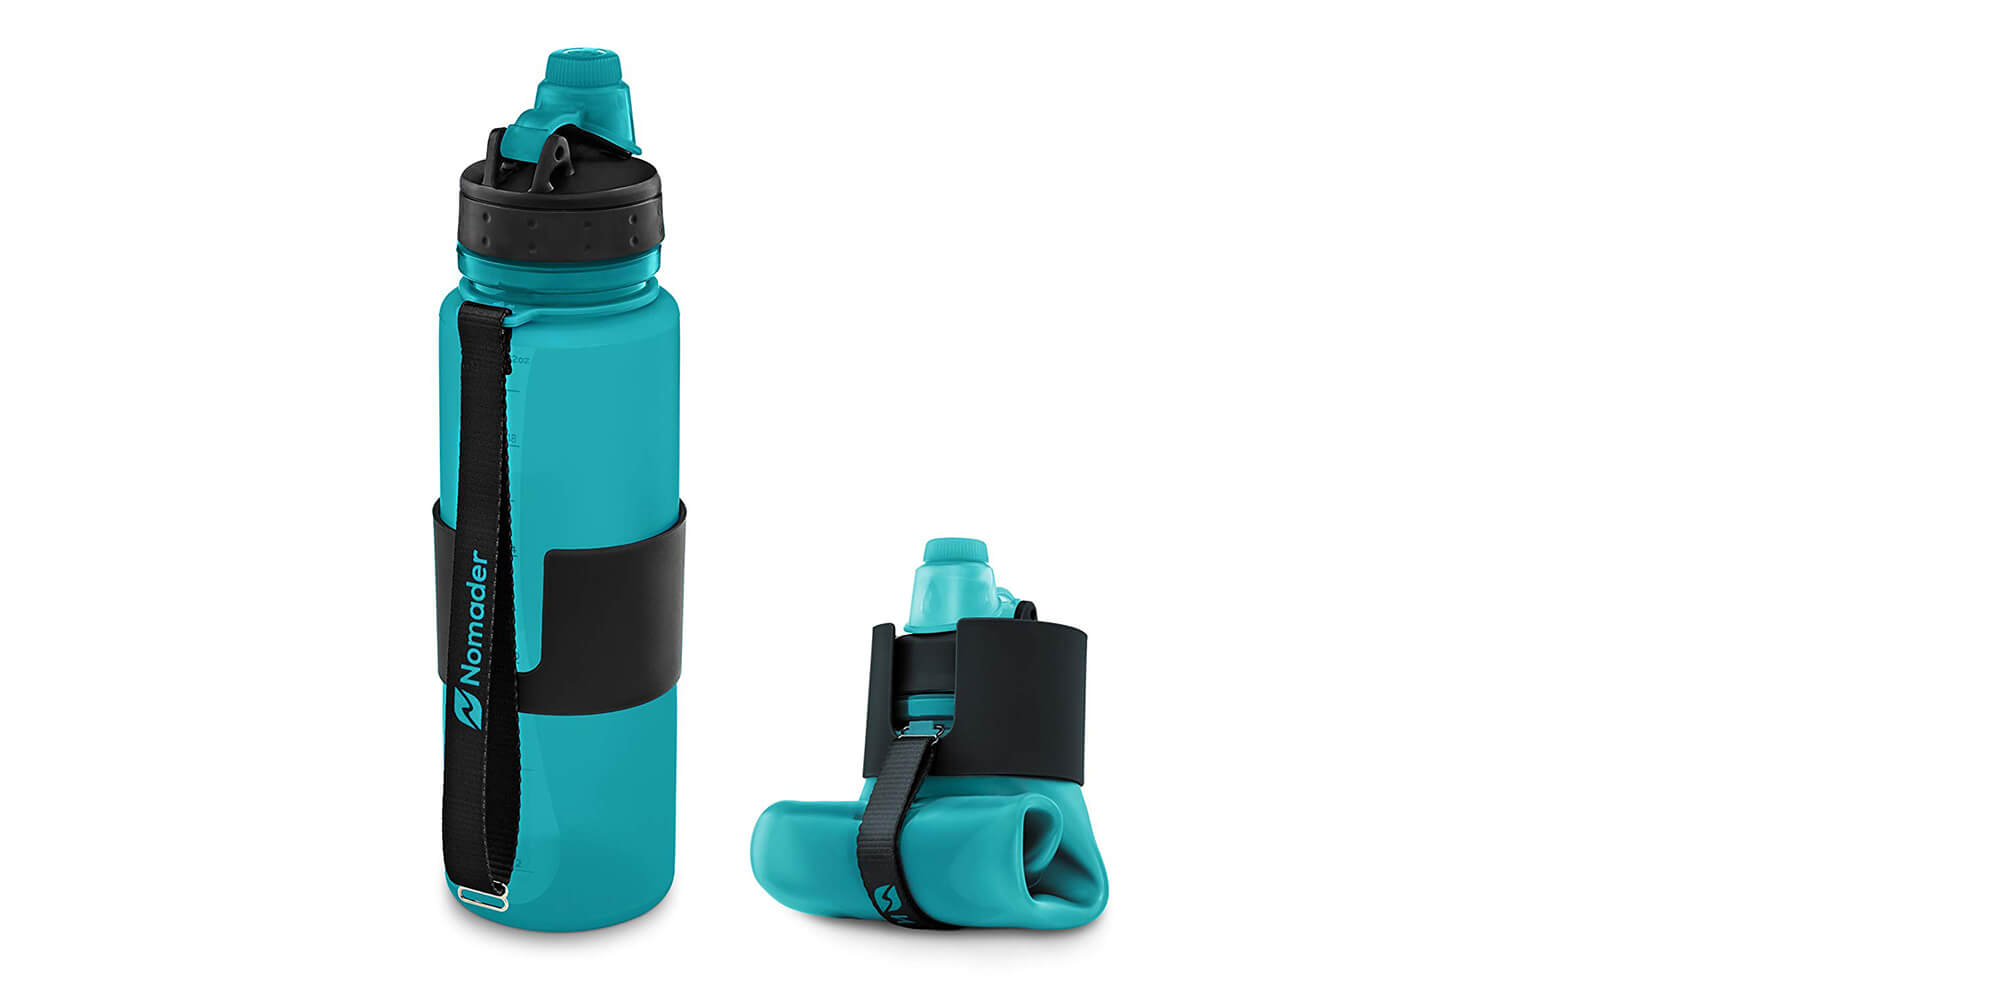 BPA-Free & Collapsible Reusable Water Bottle by Nomader